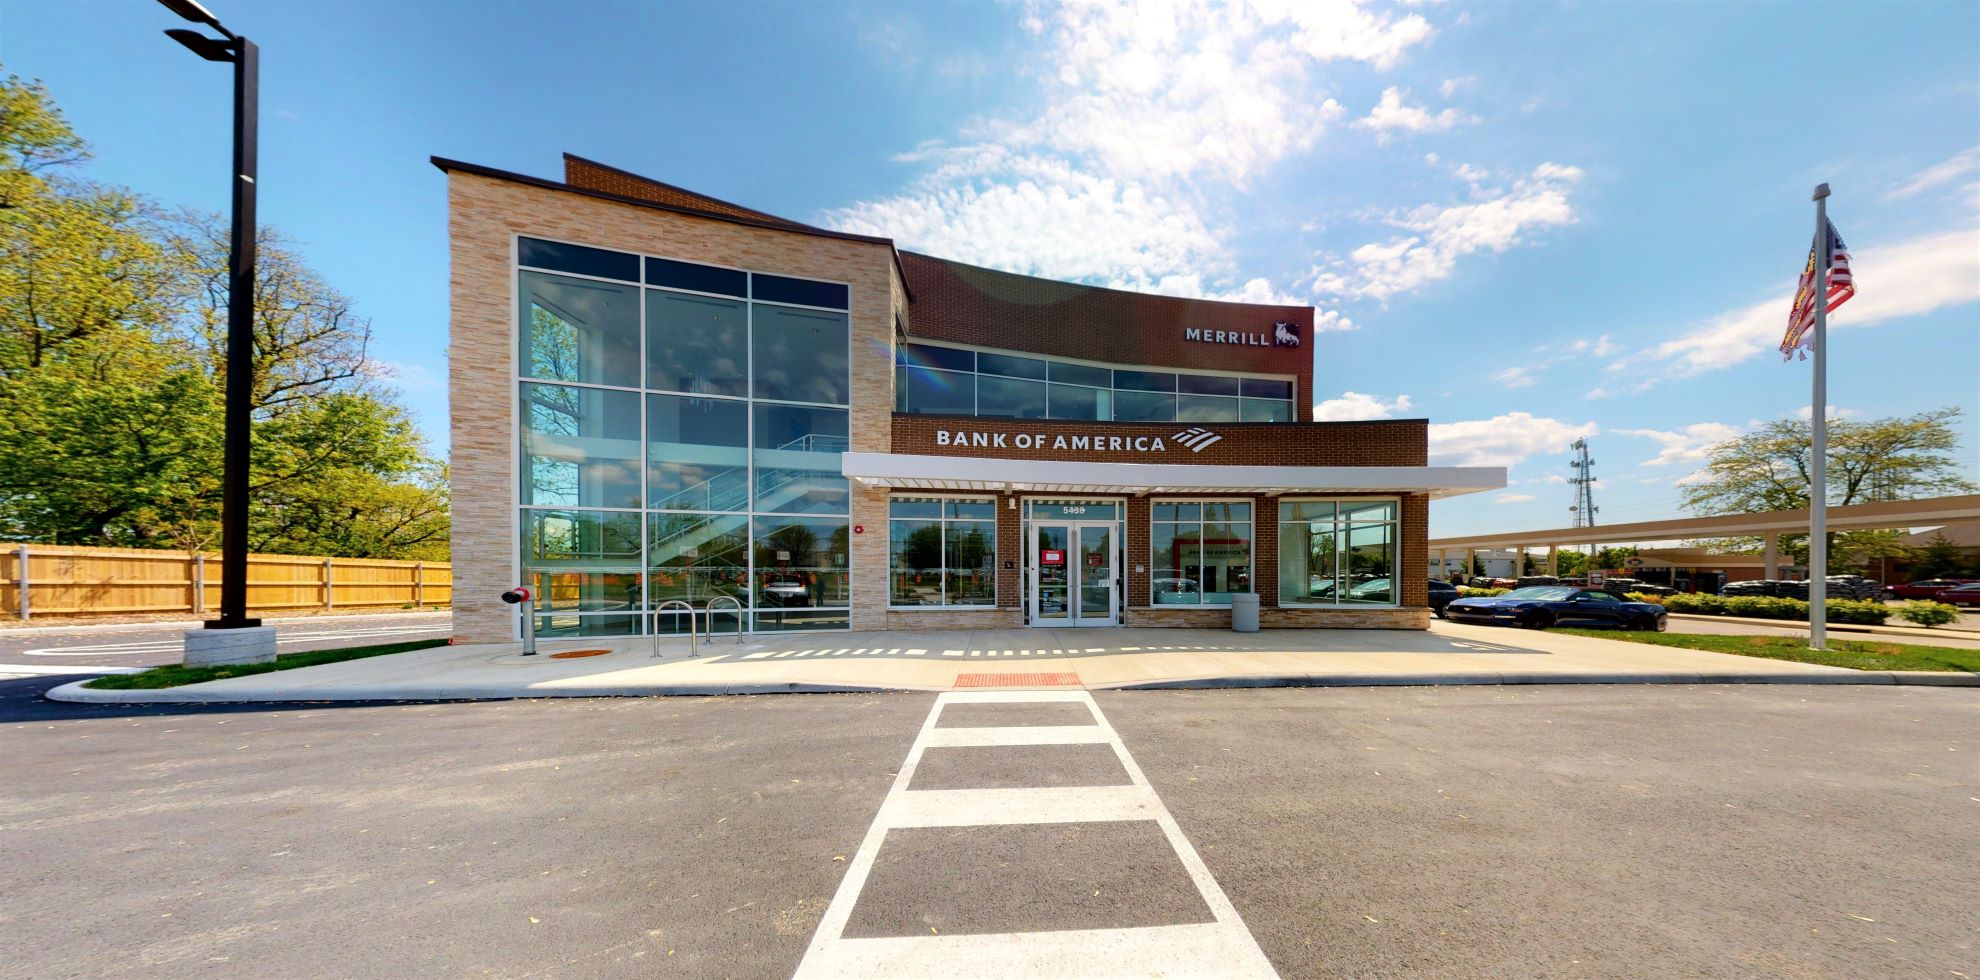 Bank of America financial center with drive-thru ATM | 5438 N Hamilton Rd, Columbus, OH 43230